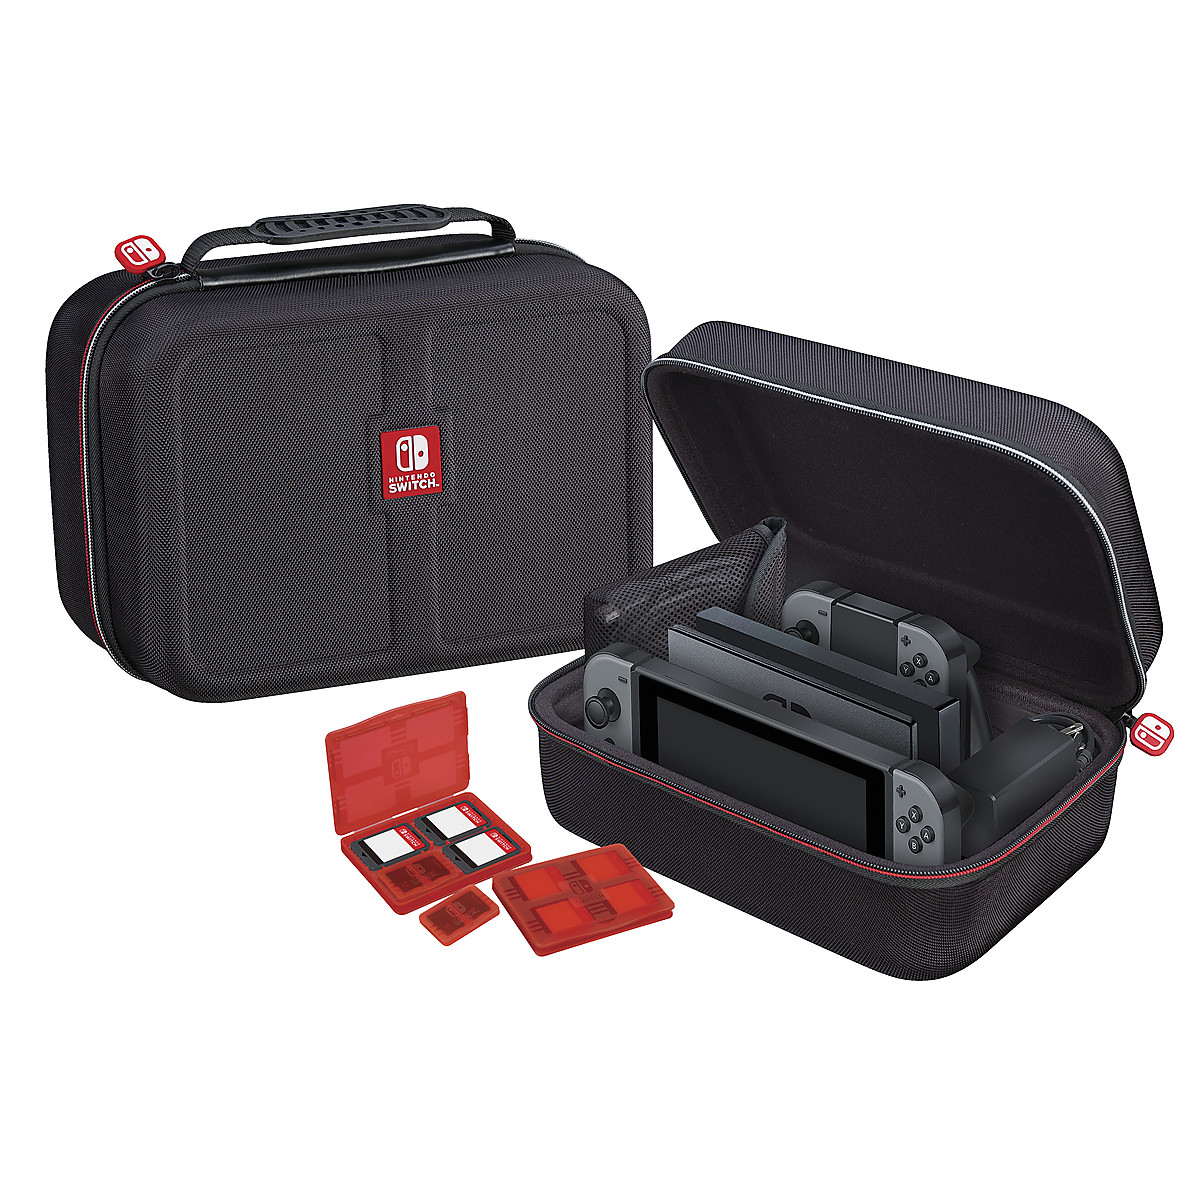 Nintendo Switch Complete Deluxe Travel Case